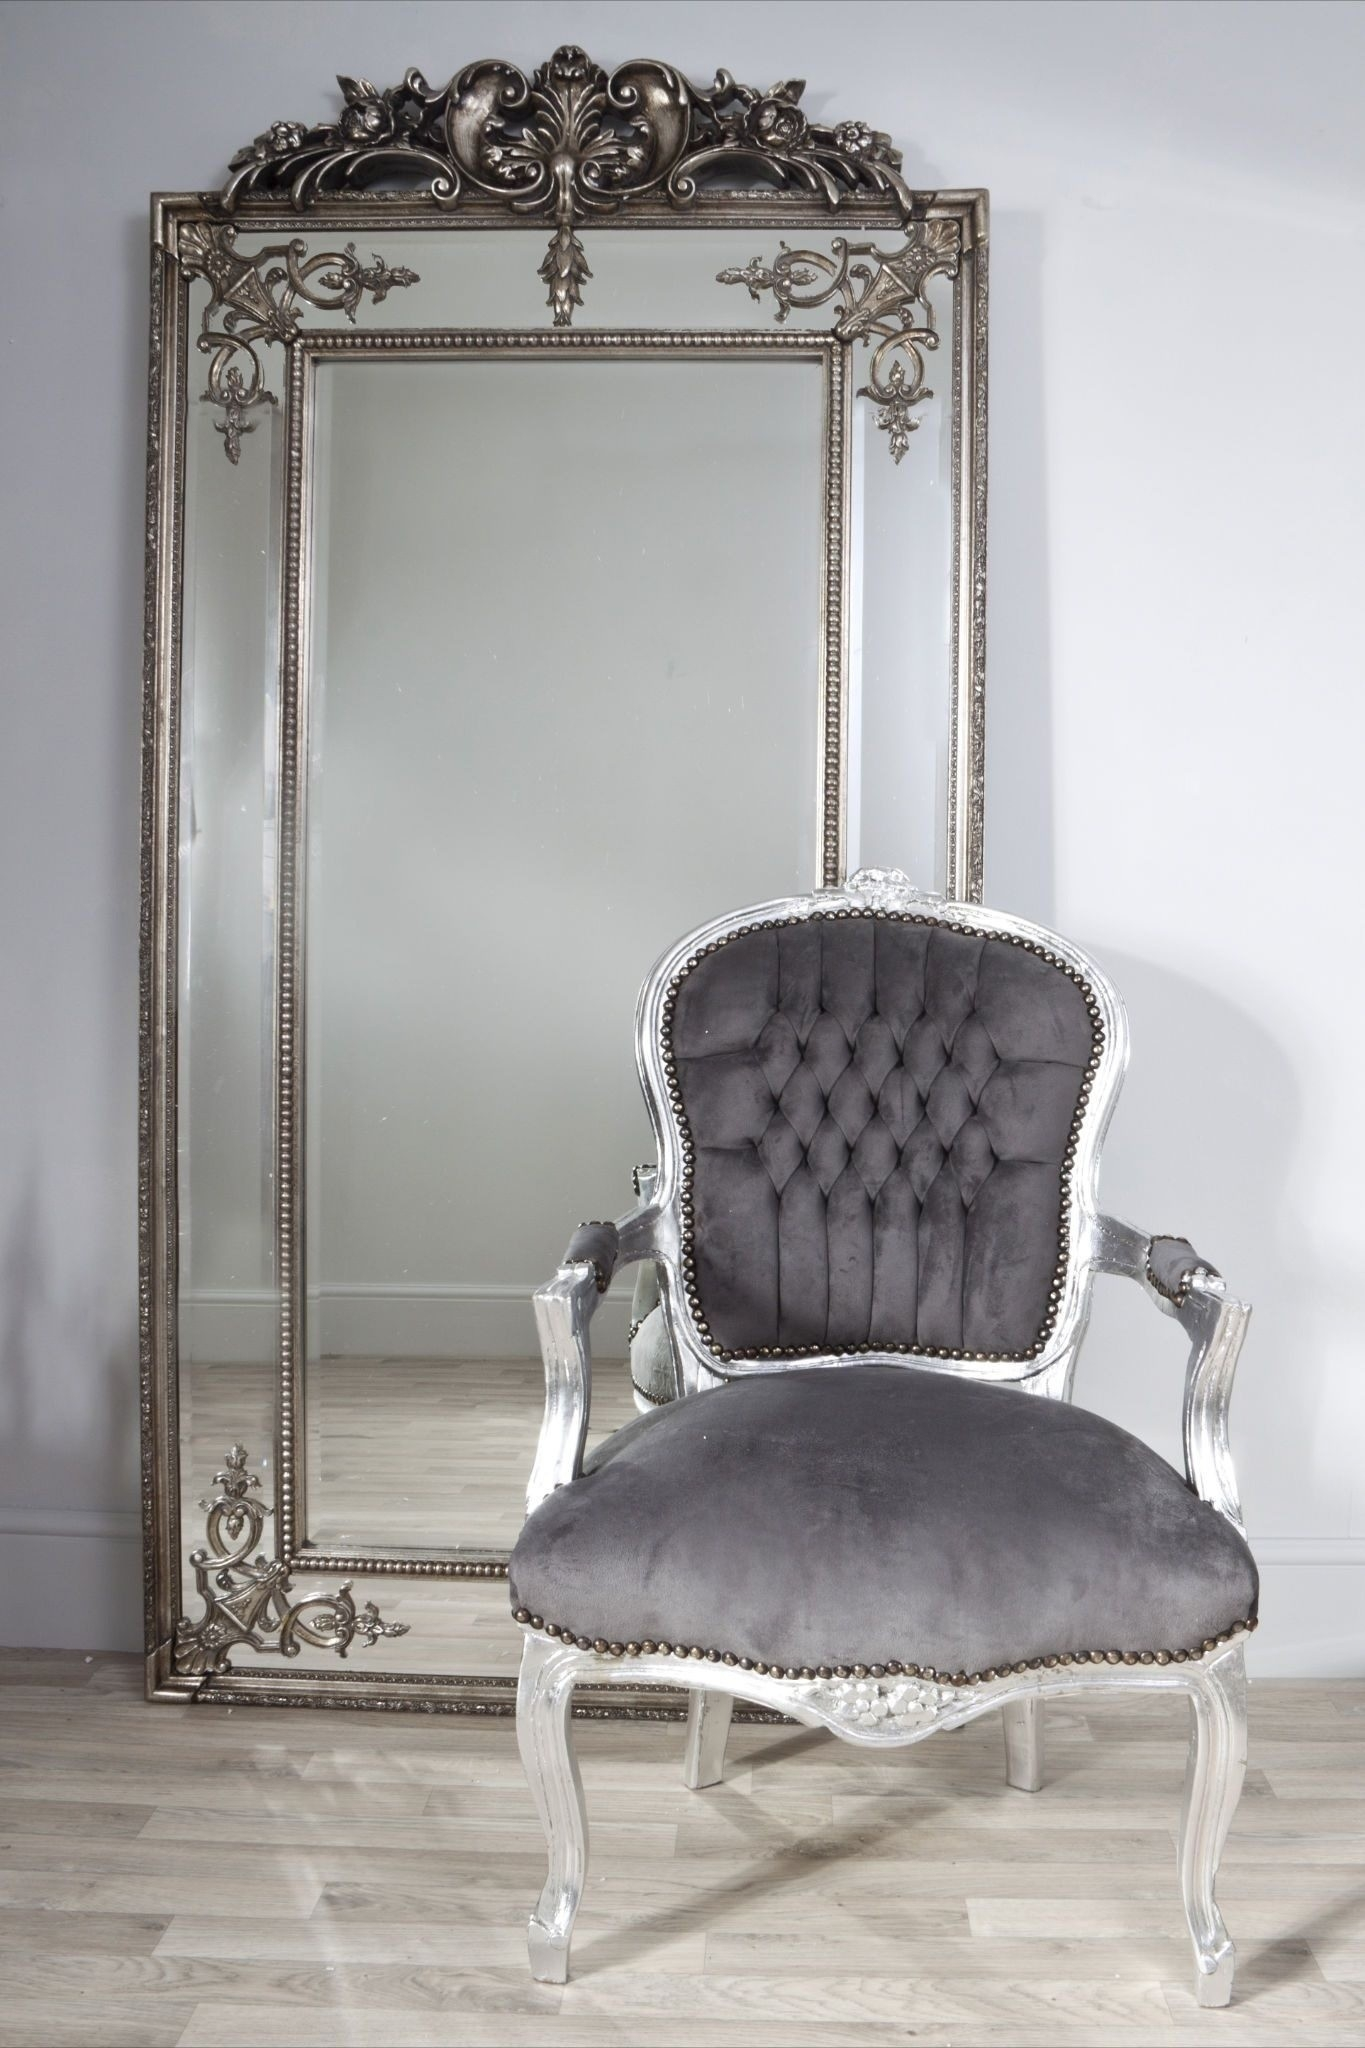 Black Framed Mirrors Uk Small White Oval Mirror Back To Design Intended For Large Black Ornate Mirror (Image 1 of 15)